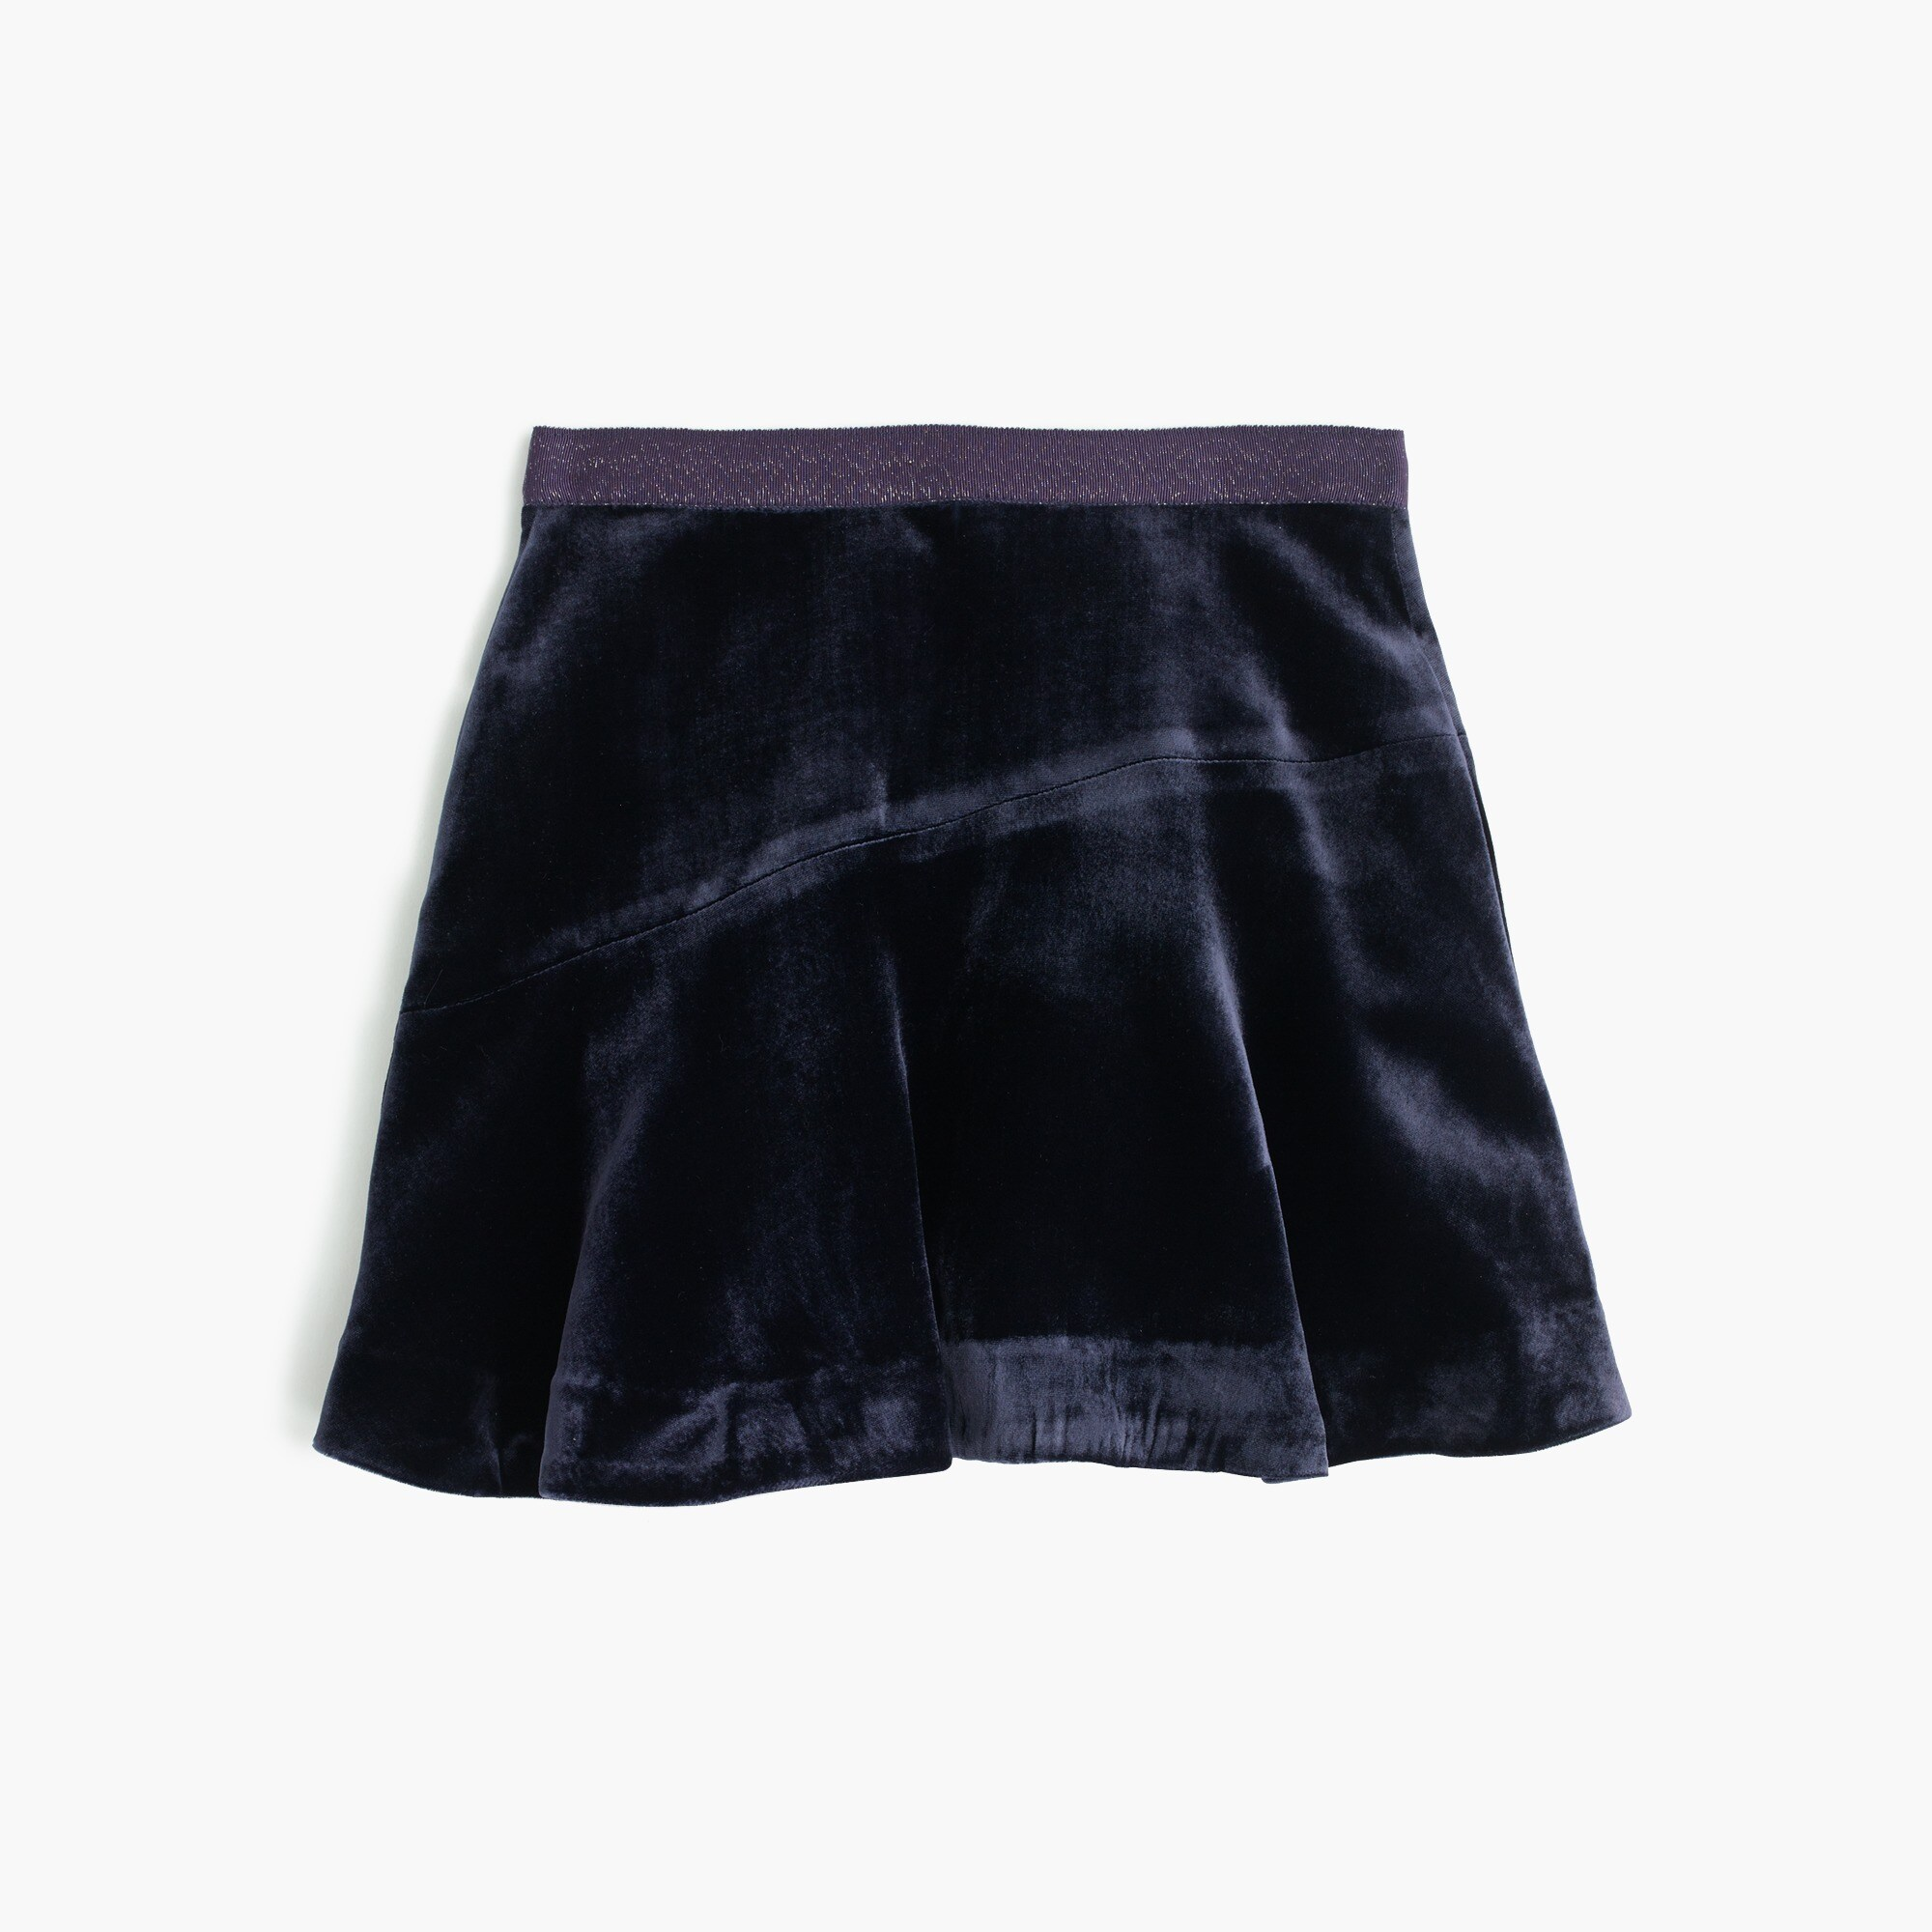 Image 1 for Girls' velvet skirt